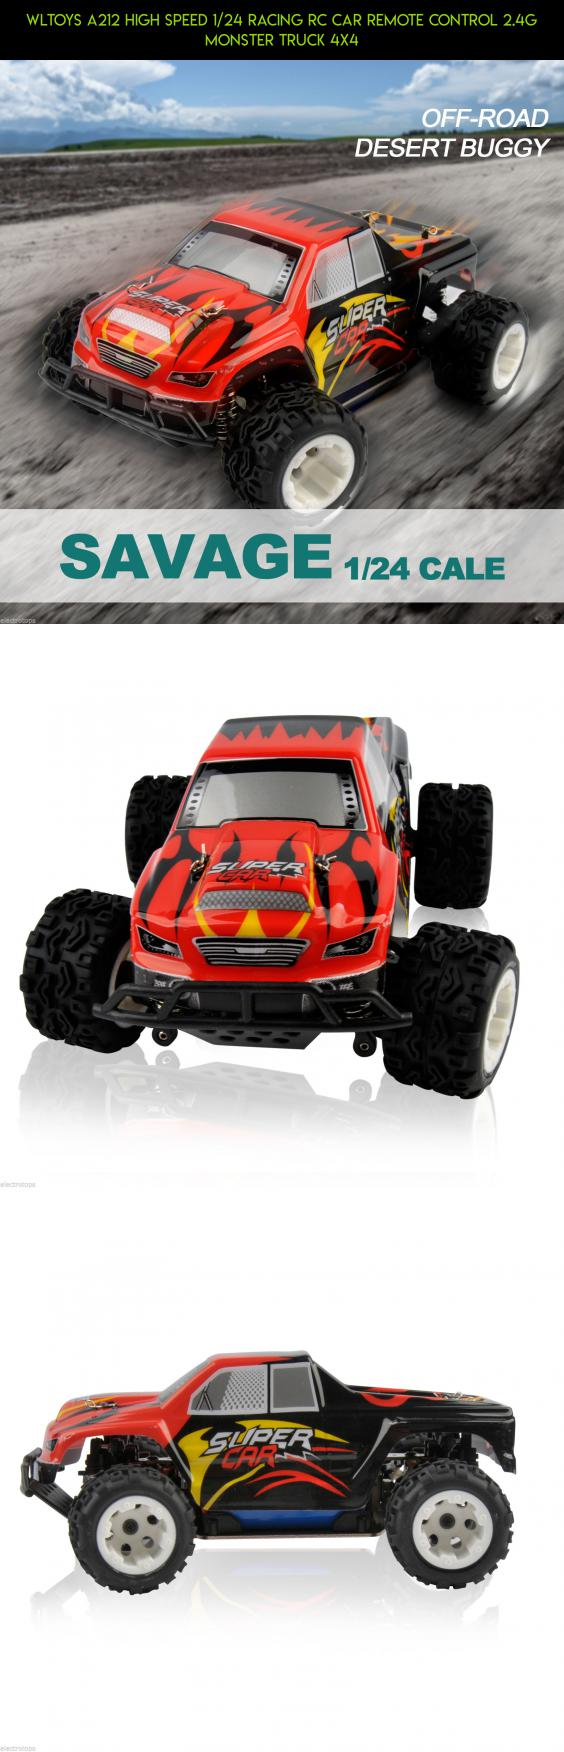 WLtoys A212 High Speed 1/24 Racing RC Car Remote Control 2